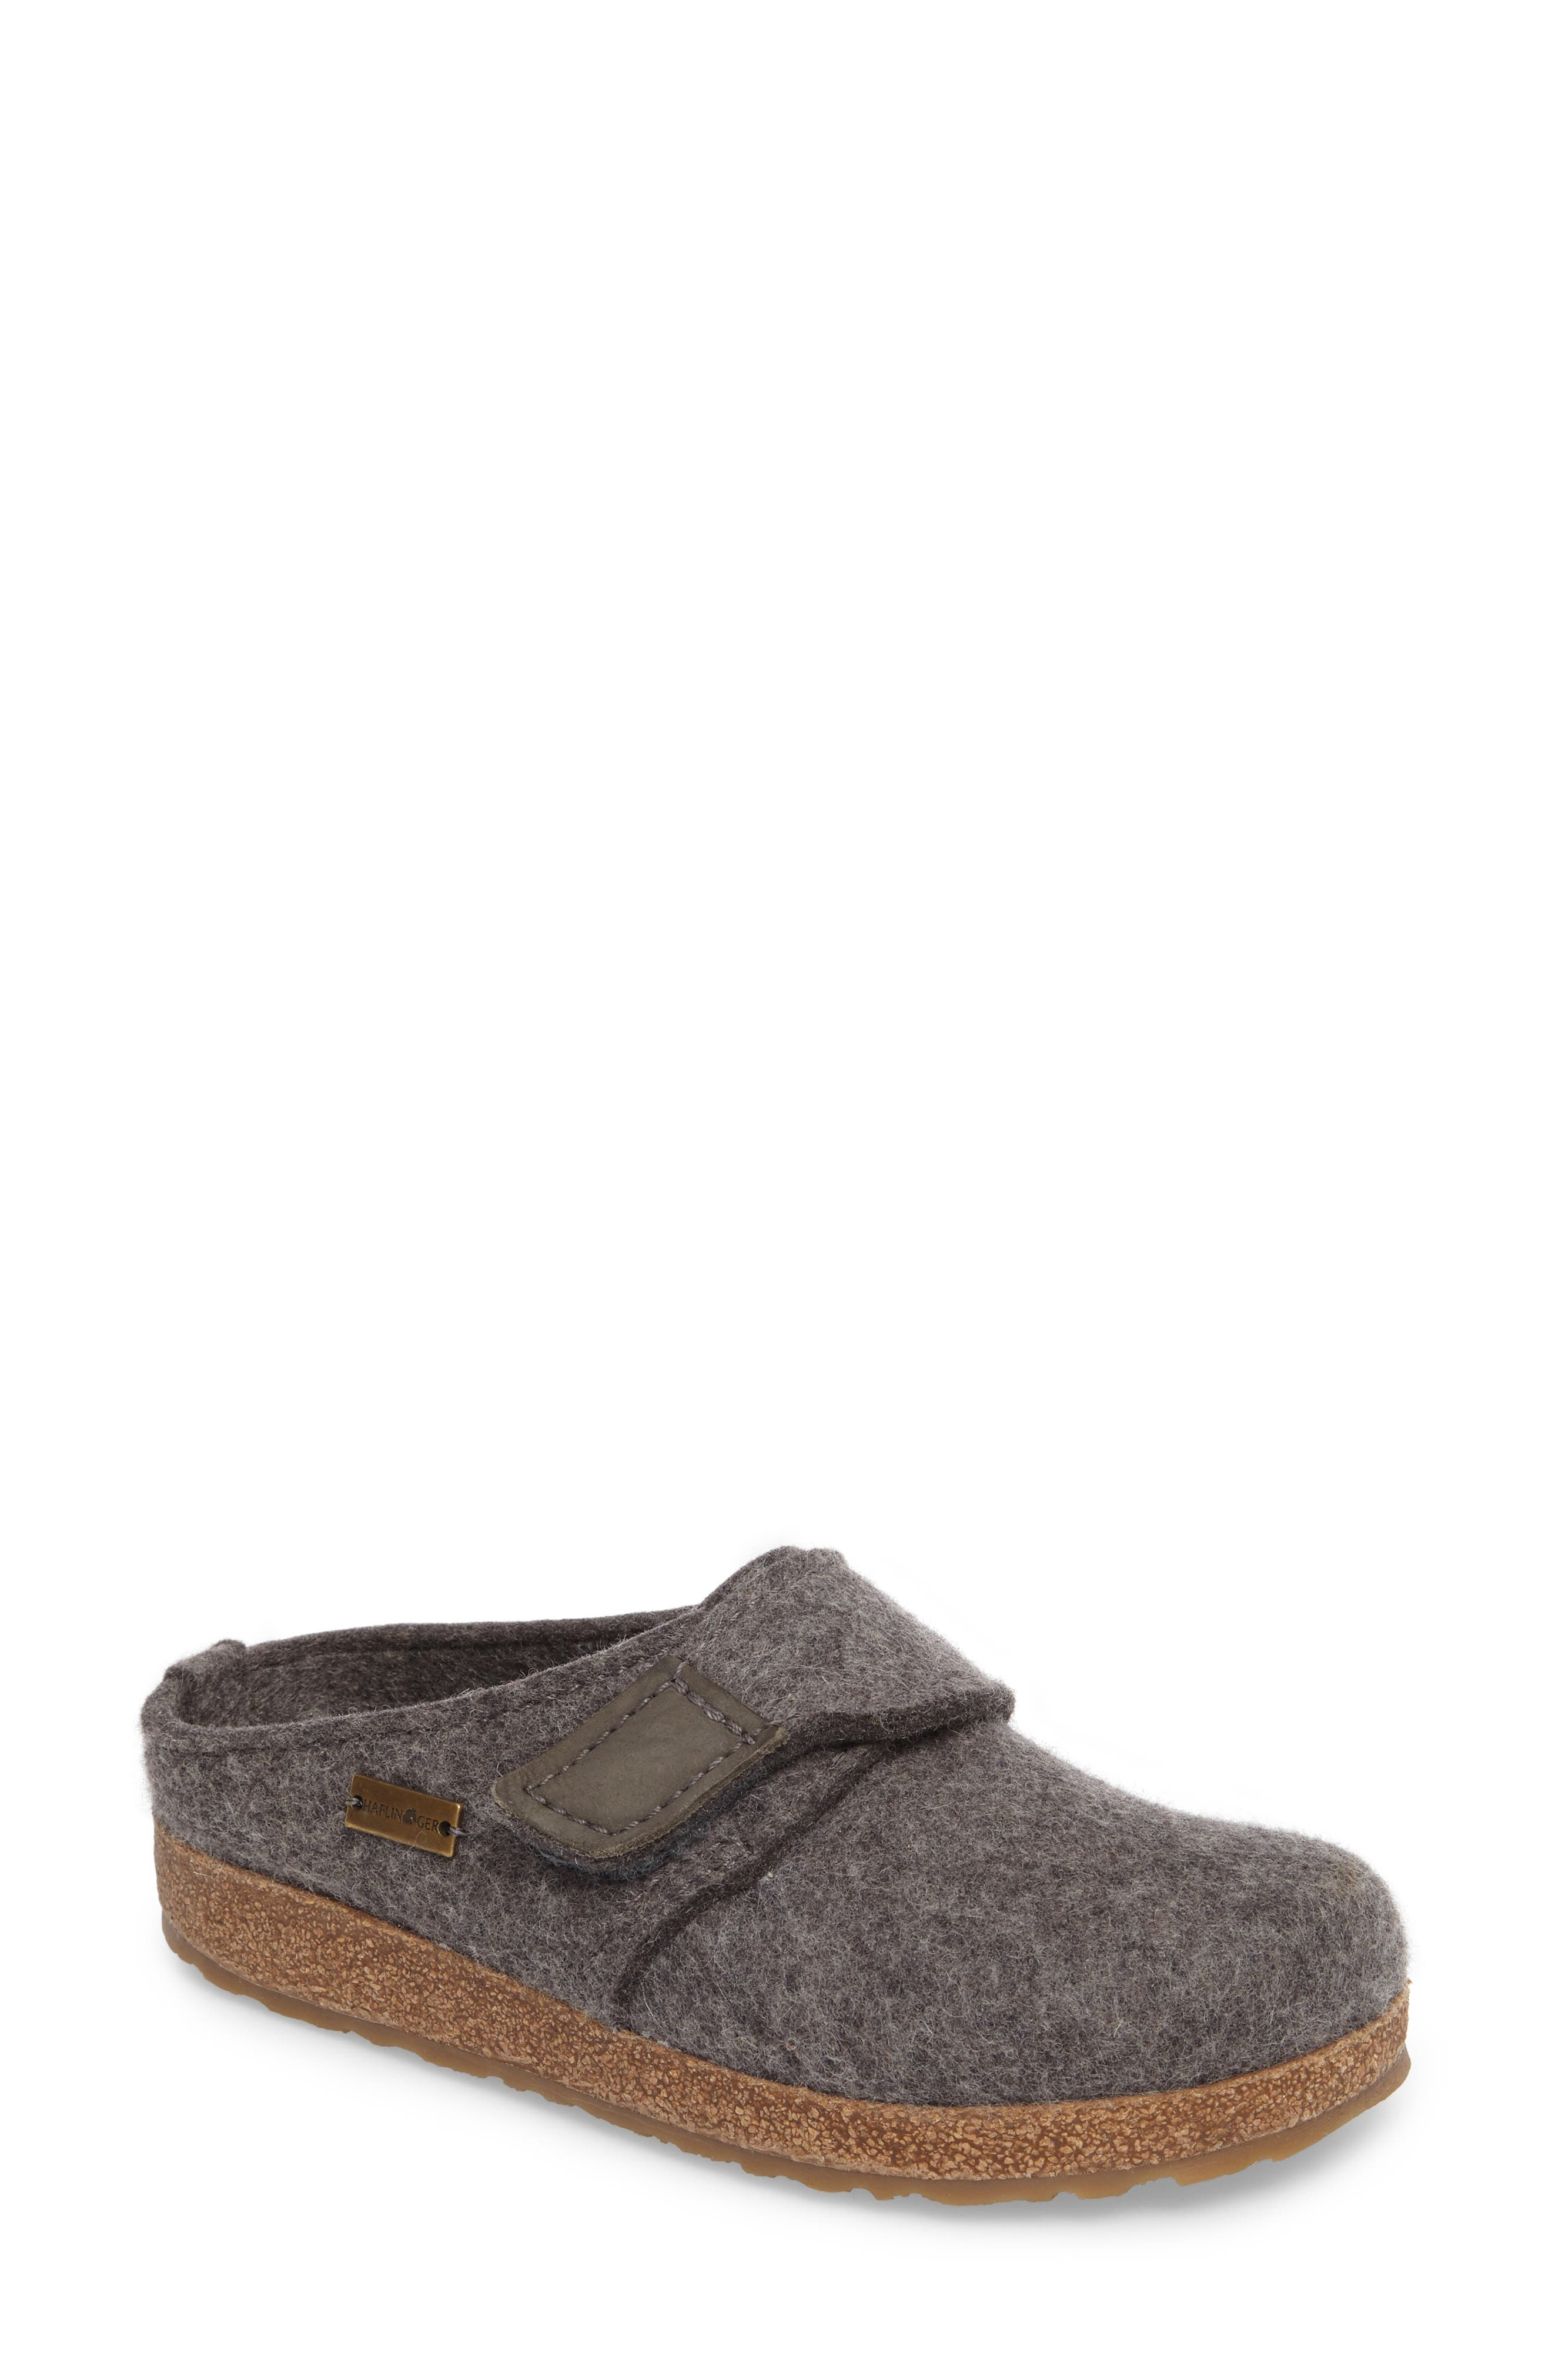 Grizzly Journey Clog Slipper,                             Main thumbnail 1, color,